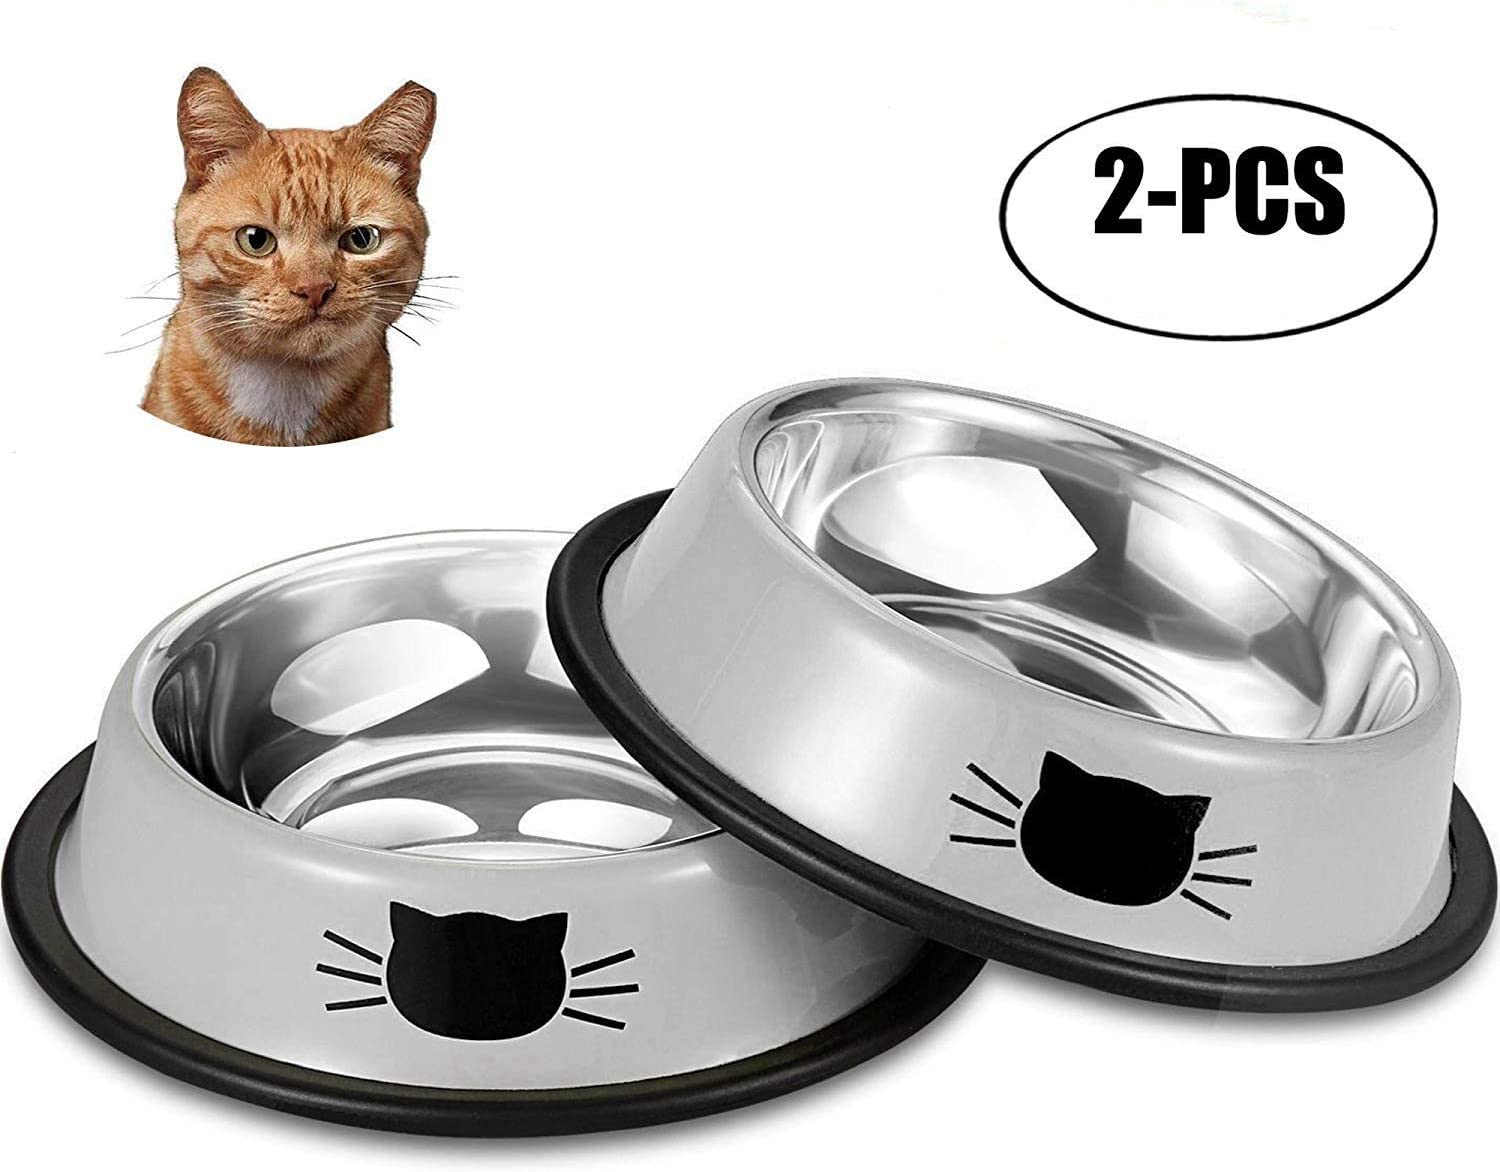 Sportgirls Cat Bowls Stainless Steel Pet Cat Food Bowl Water Bowl Feeding Bowl Kitten Bowl Puppy Dish Bowl With Non Skid Bottom For Small Dogs Cats 11 5 15 5 3 5 Cm Amazon Co Uk